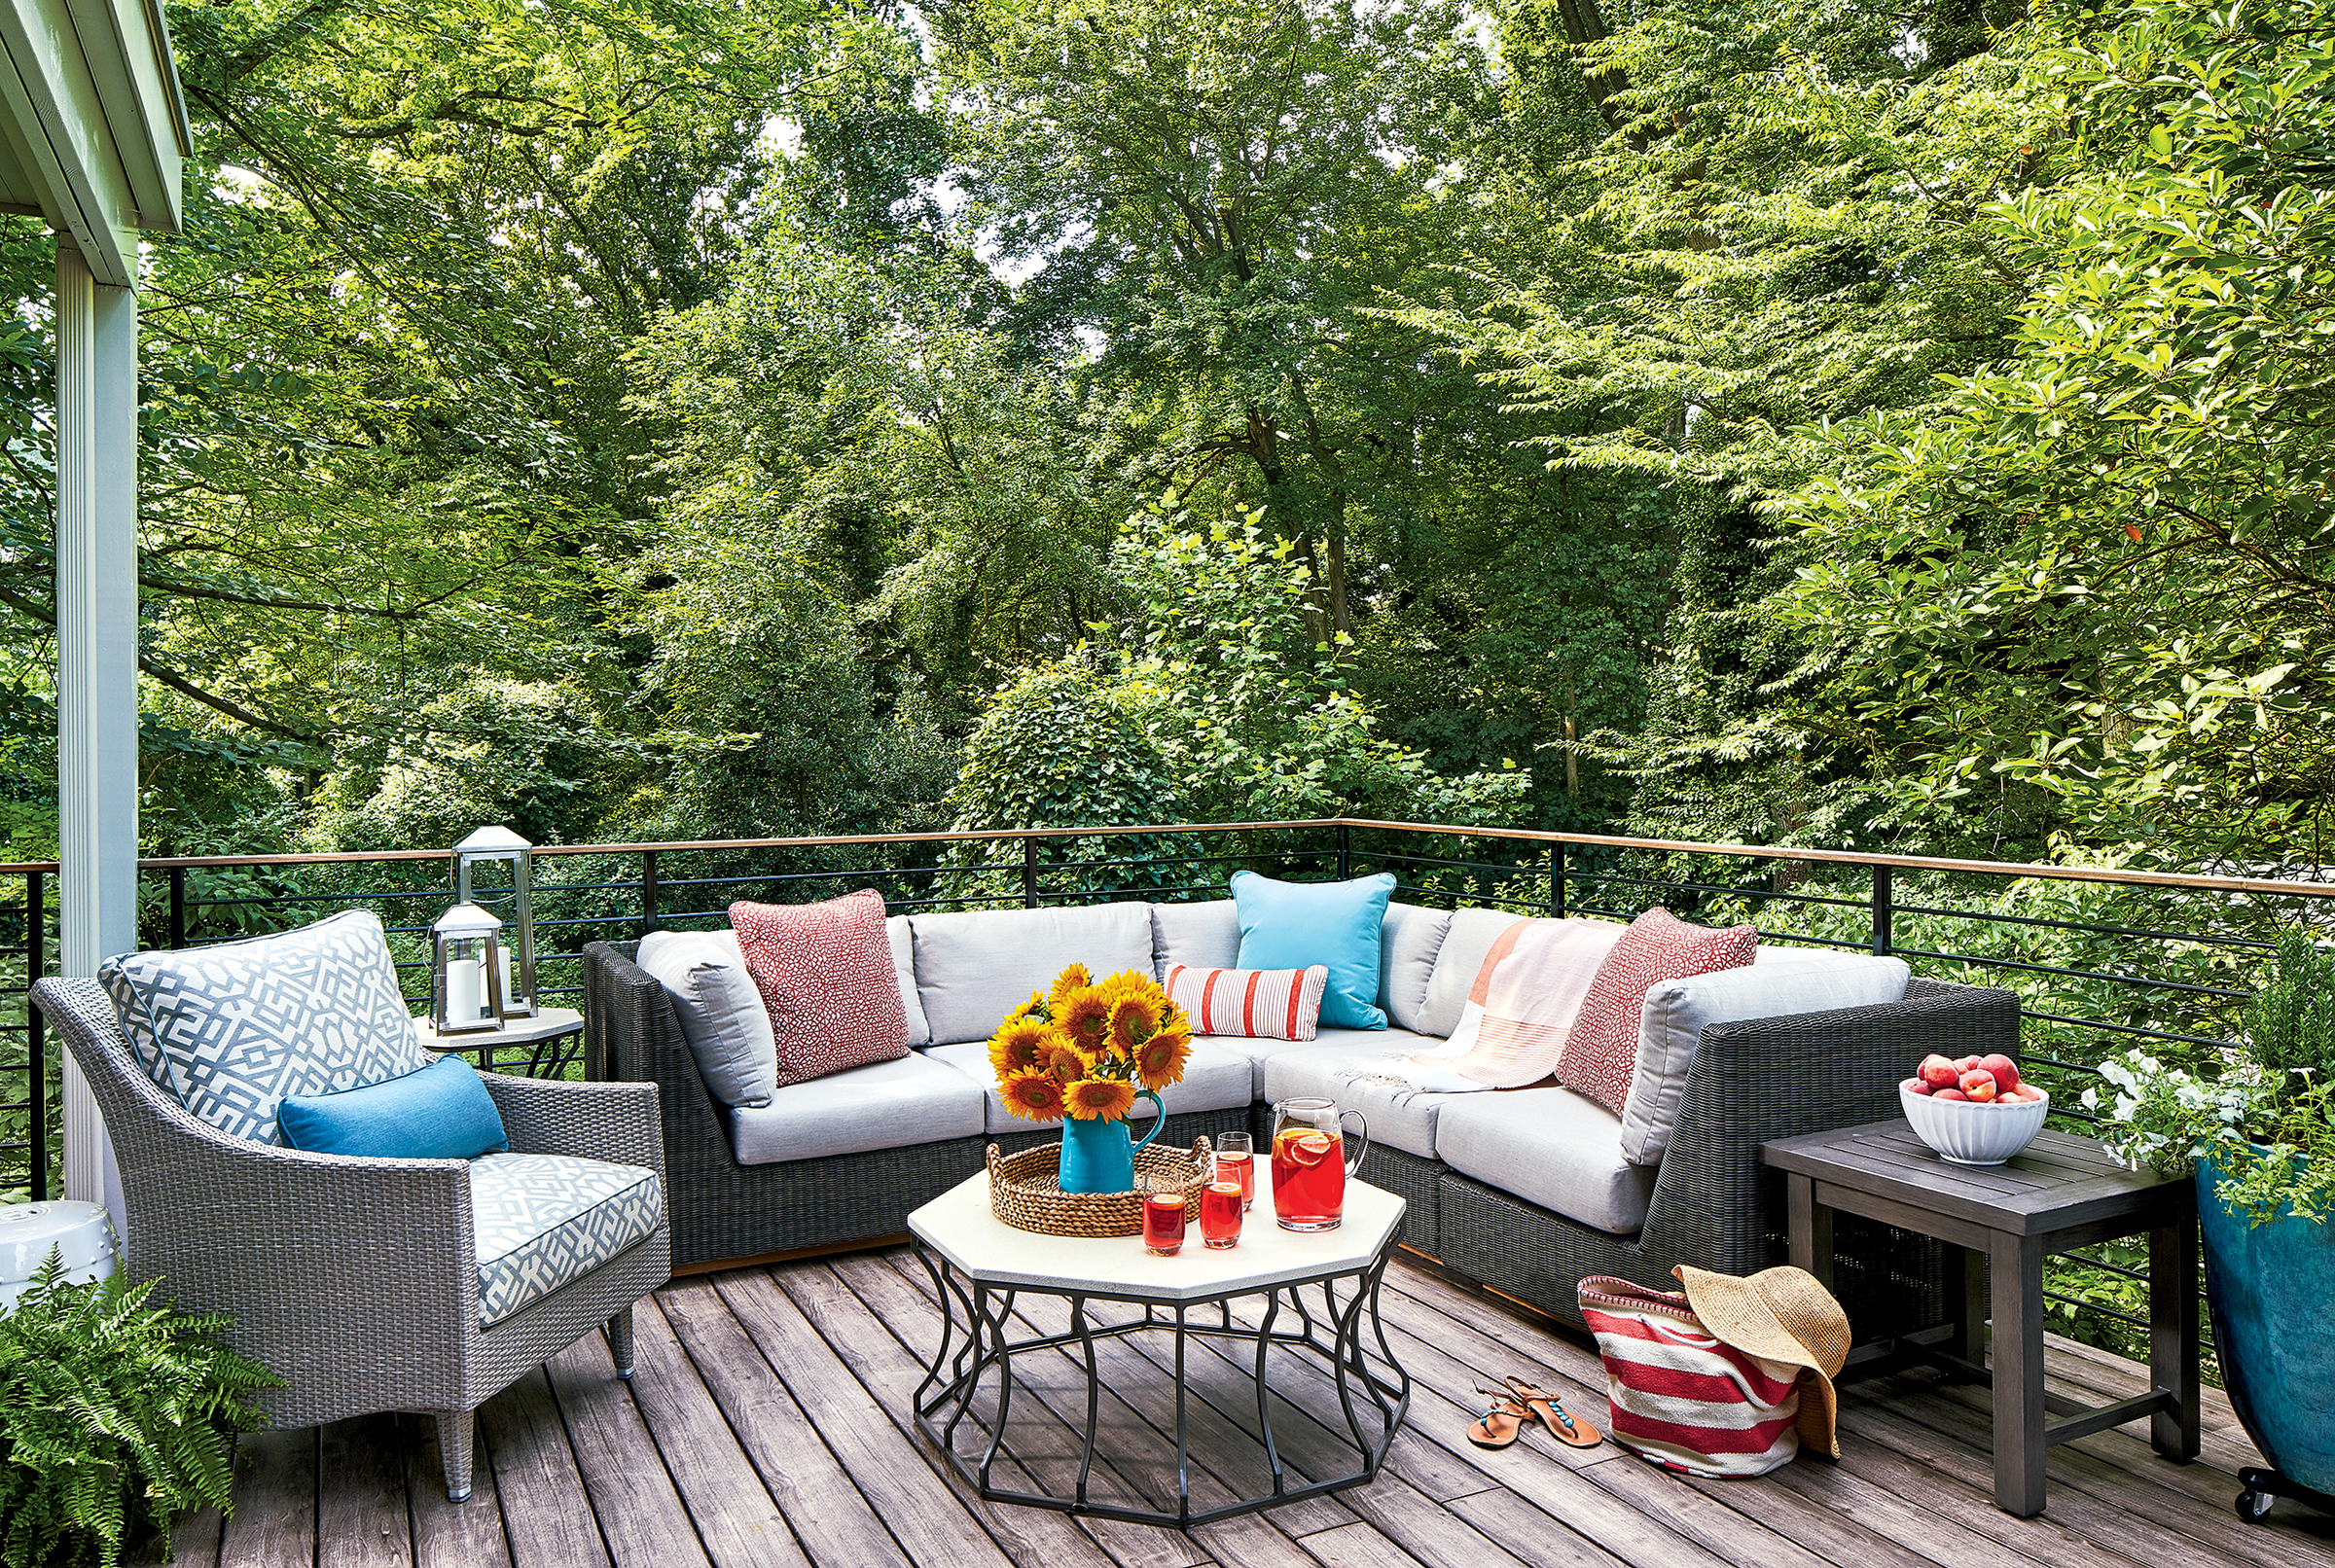 Durable pieces, such as weather-resistant wicker furniture, keep this deck both practical and stylish. Photograph by Stacy Zarin Goldberg.